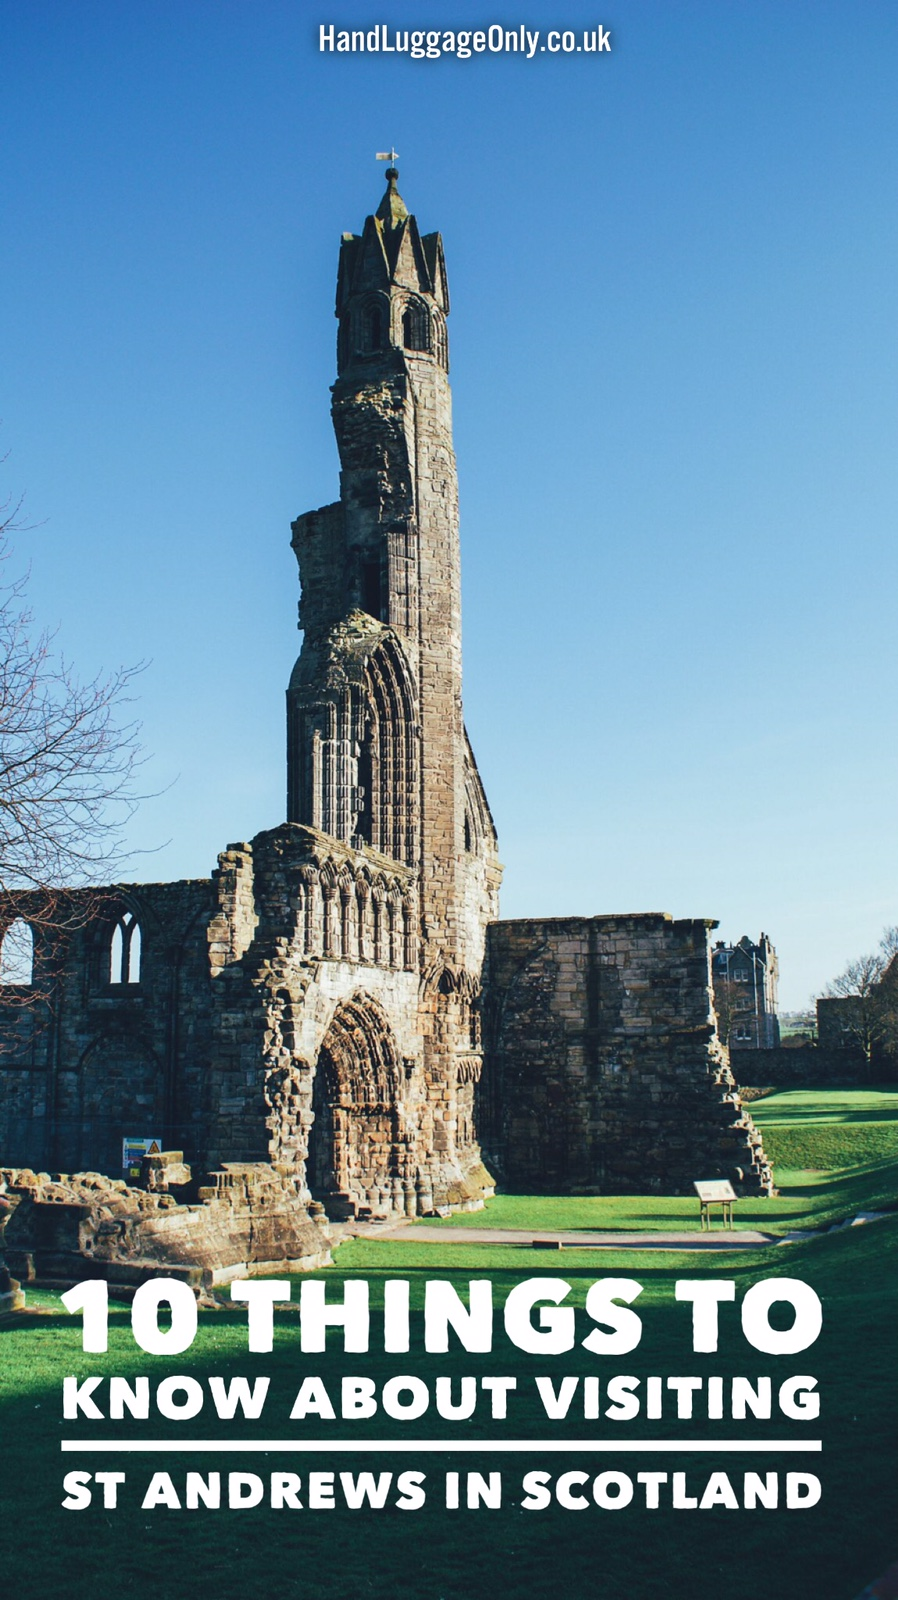 10 Things You Need To Know About Visiting St Andrews In Scotland